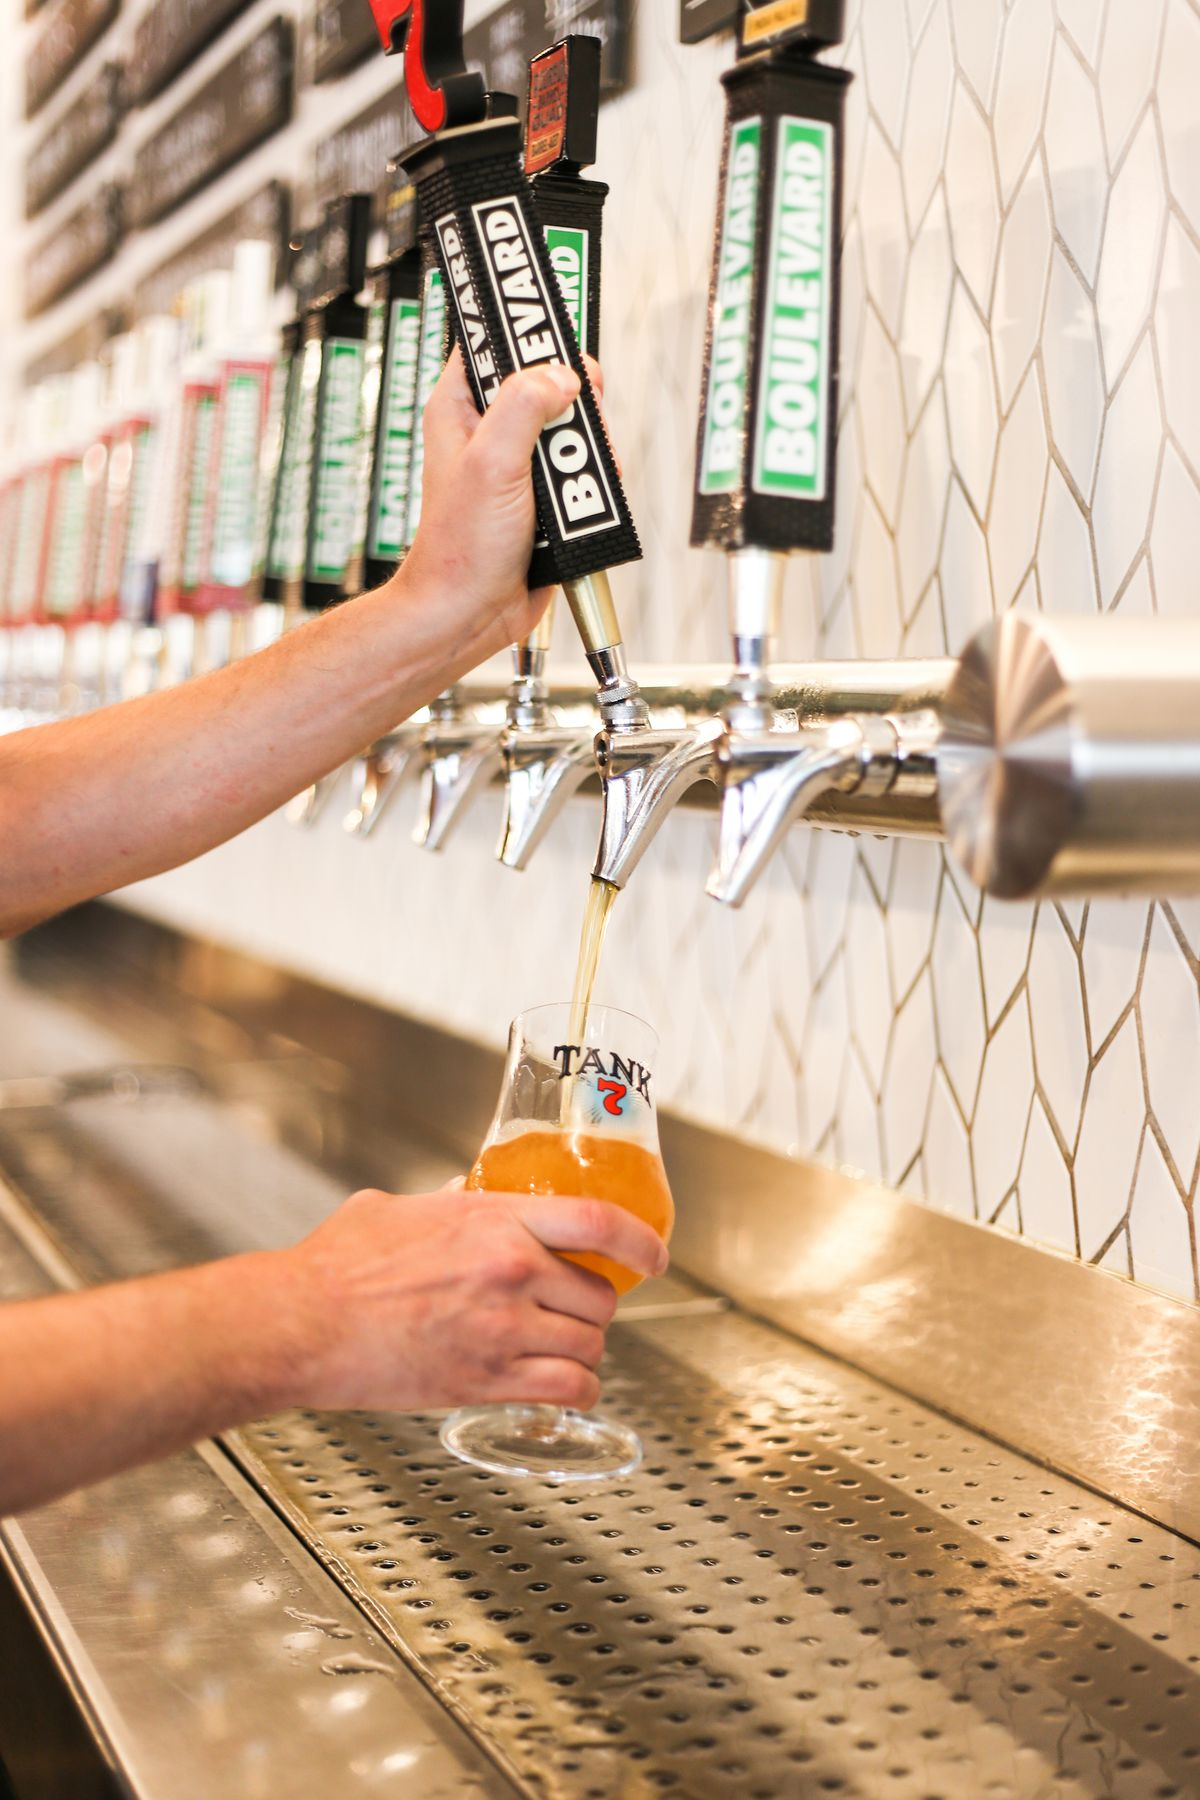 A bartender pours a Boulevard Tank 7 saison from a beer tap handle at a bar.